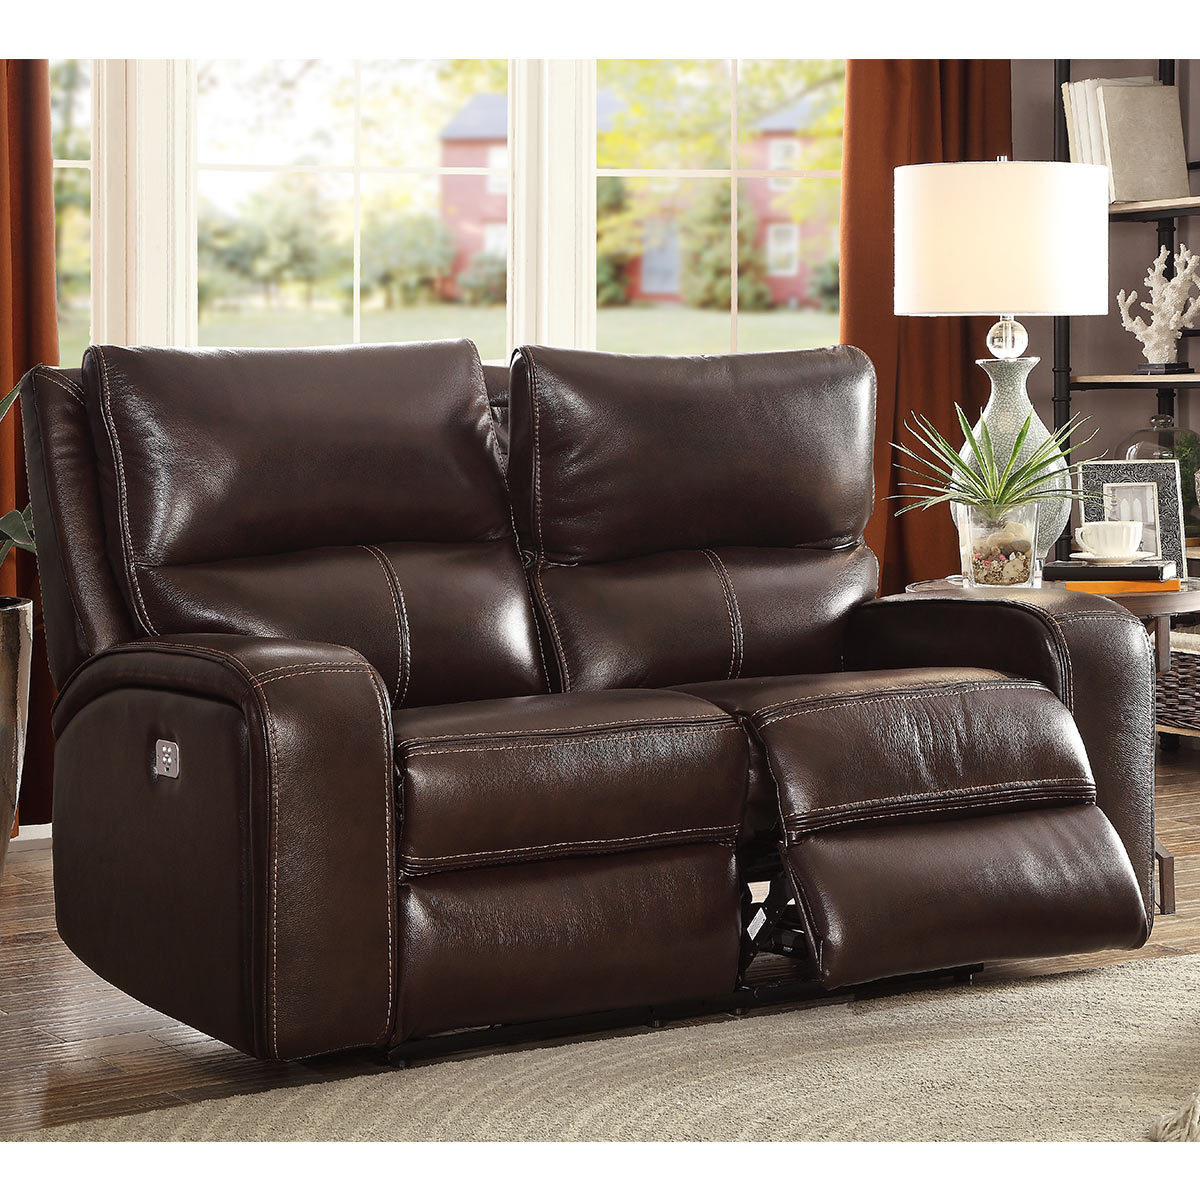 Zach 2 Seater Brown Leather Power Recliner Sofa Costco Uk